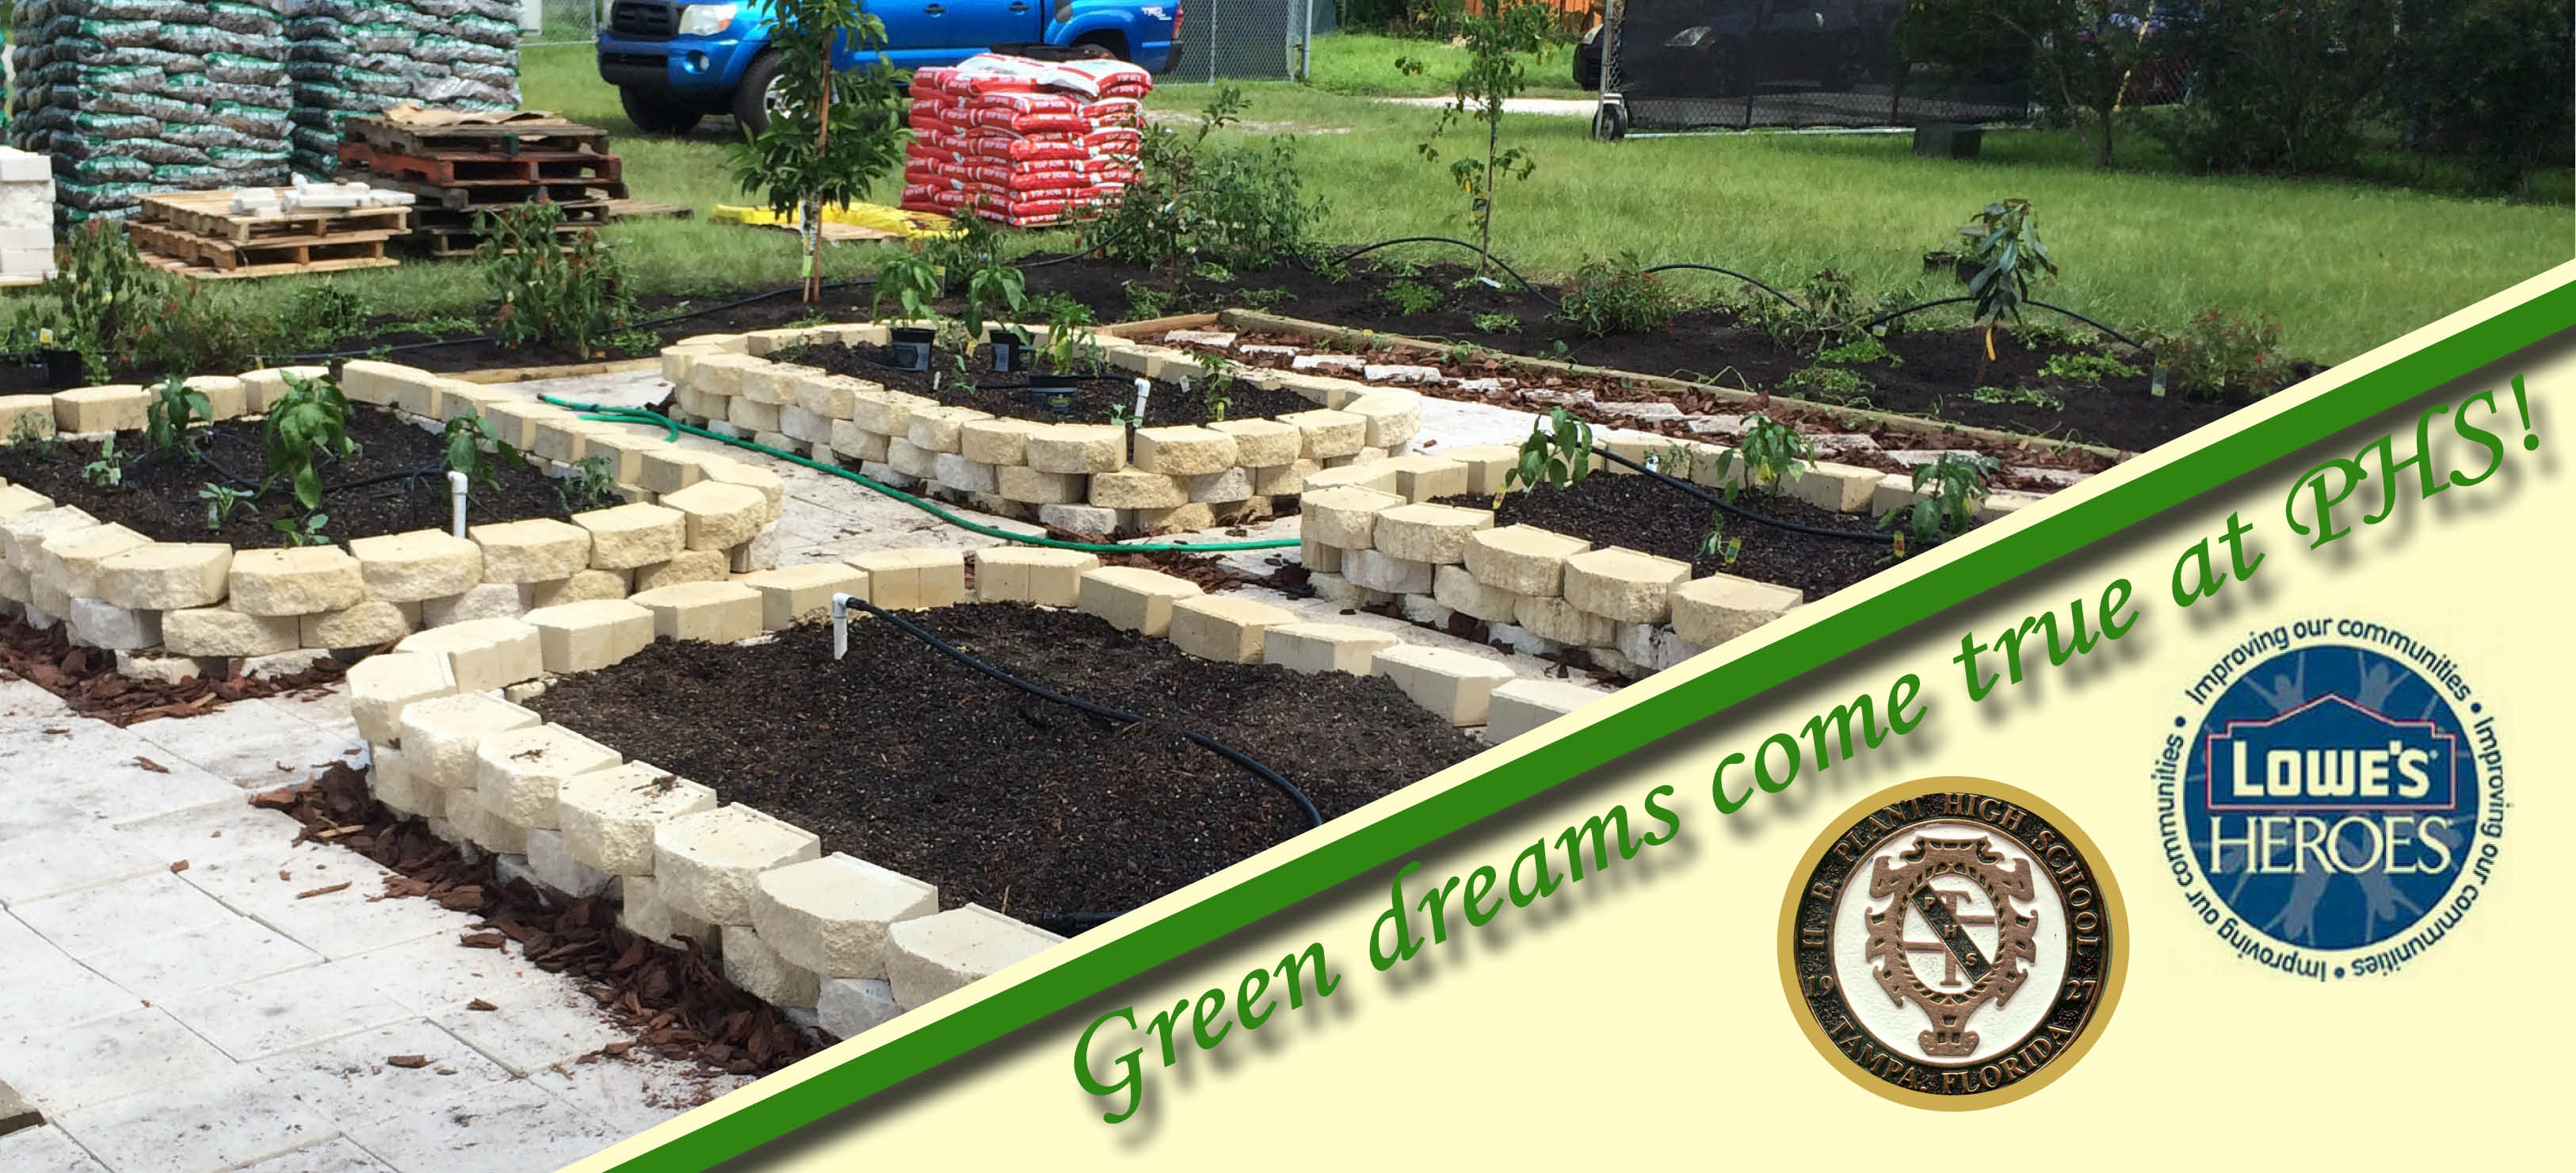 Image for Green Dreams come true at Plant High